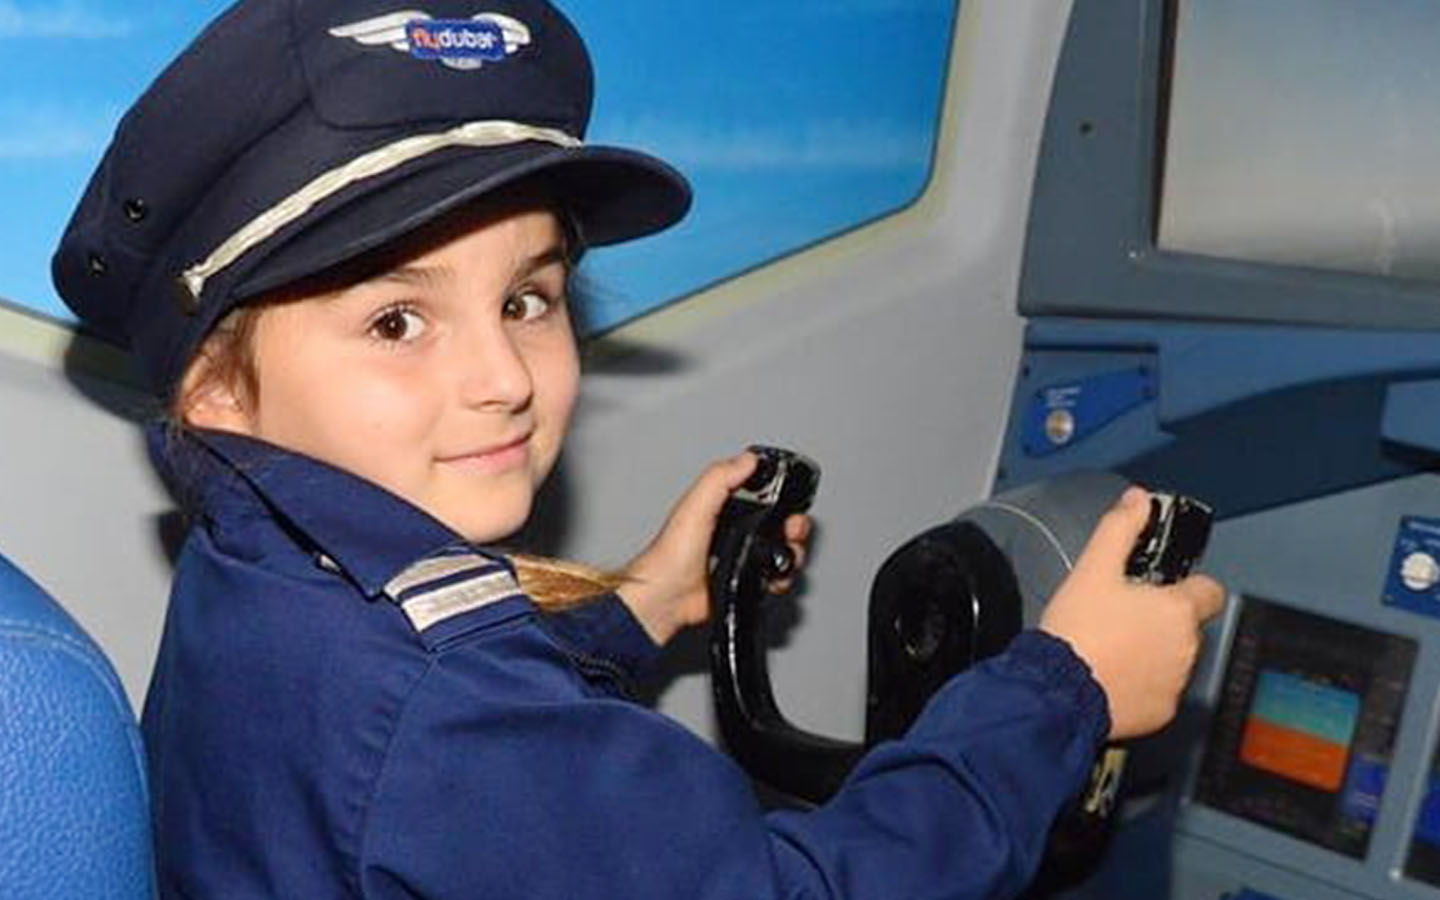 A kid flying a simulator